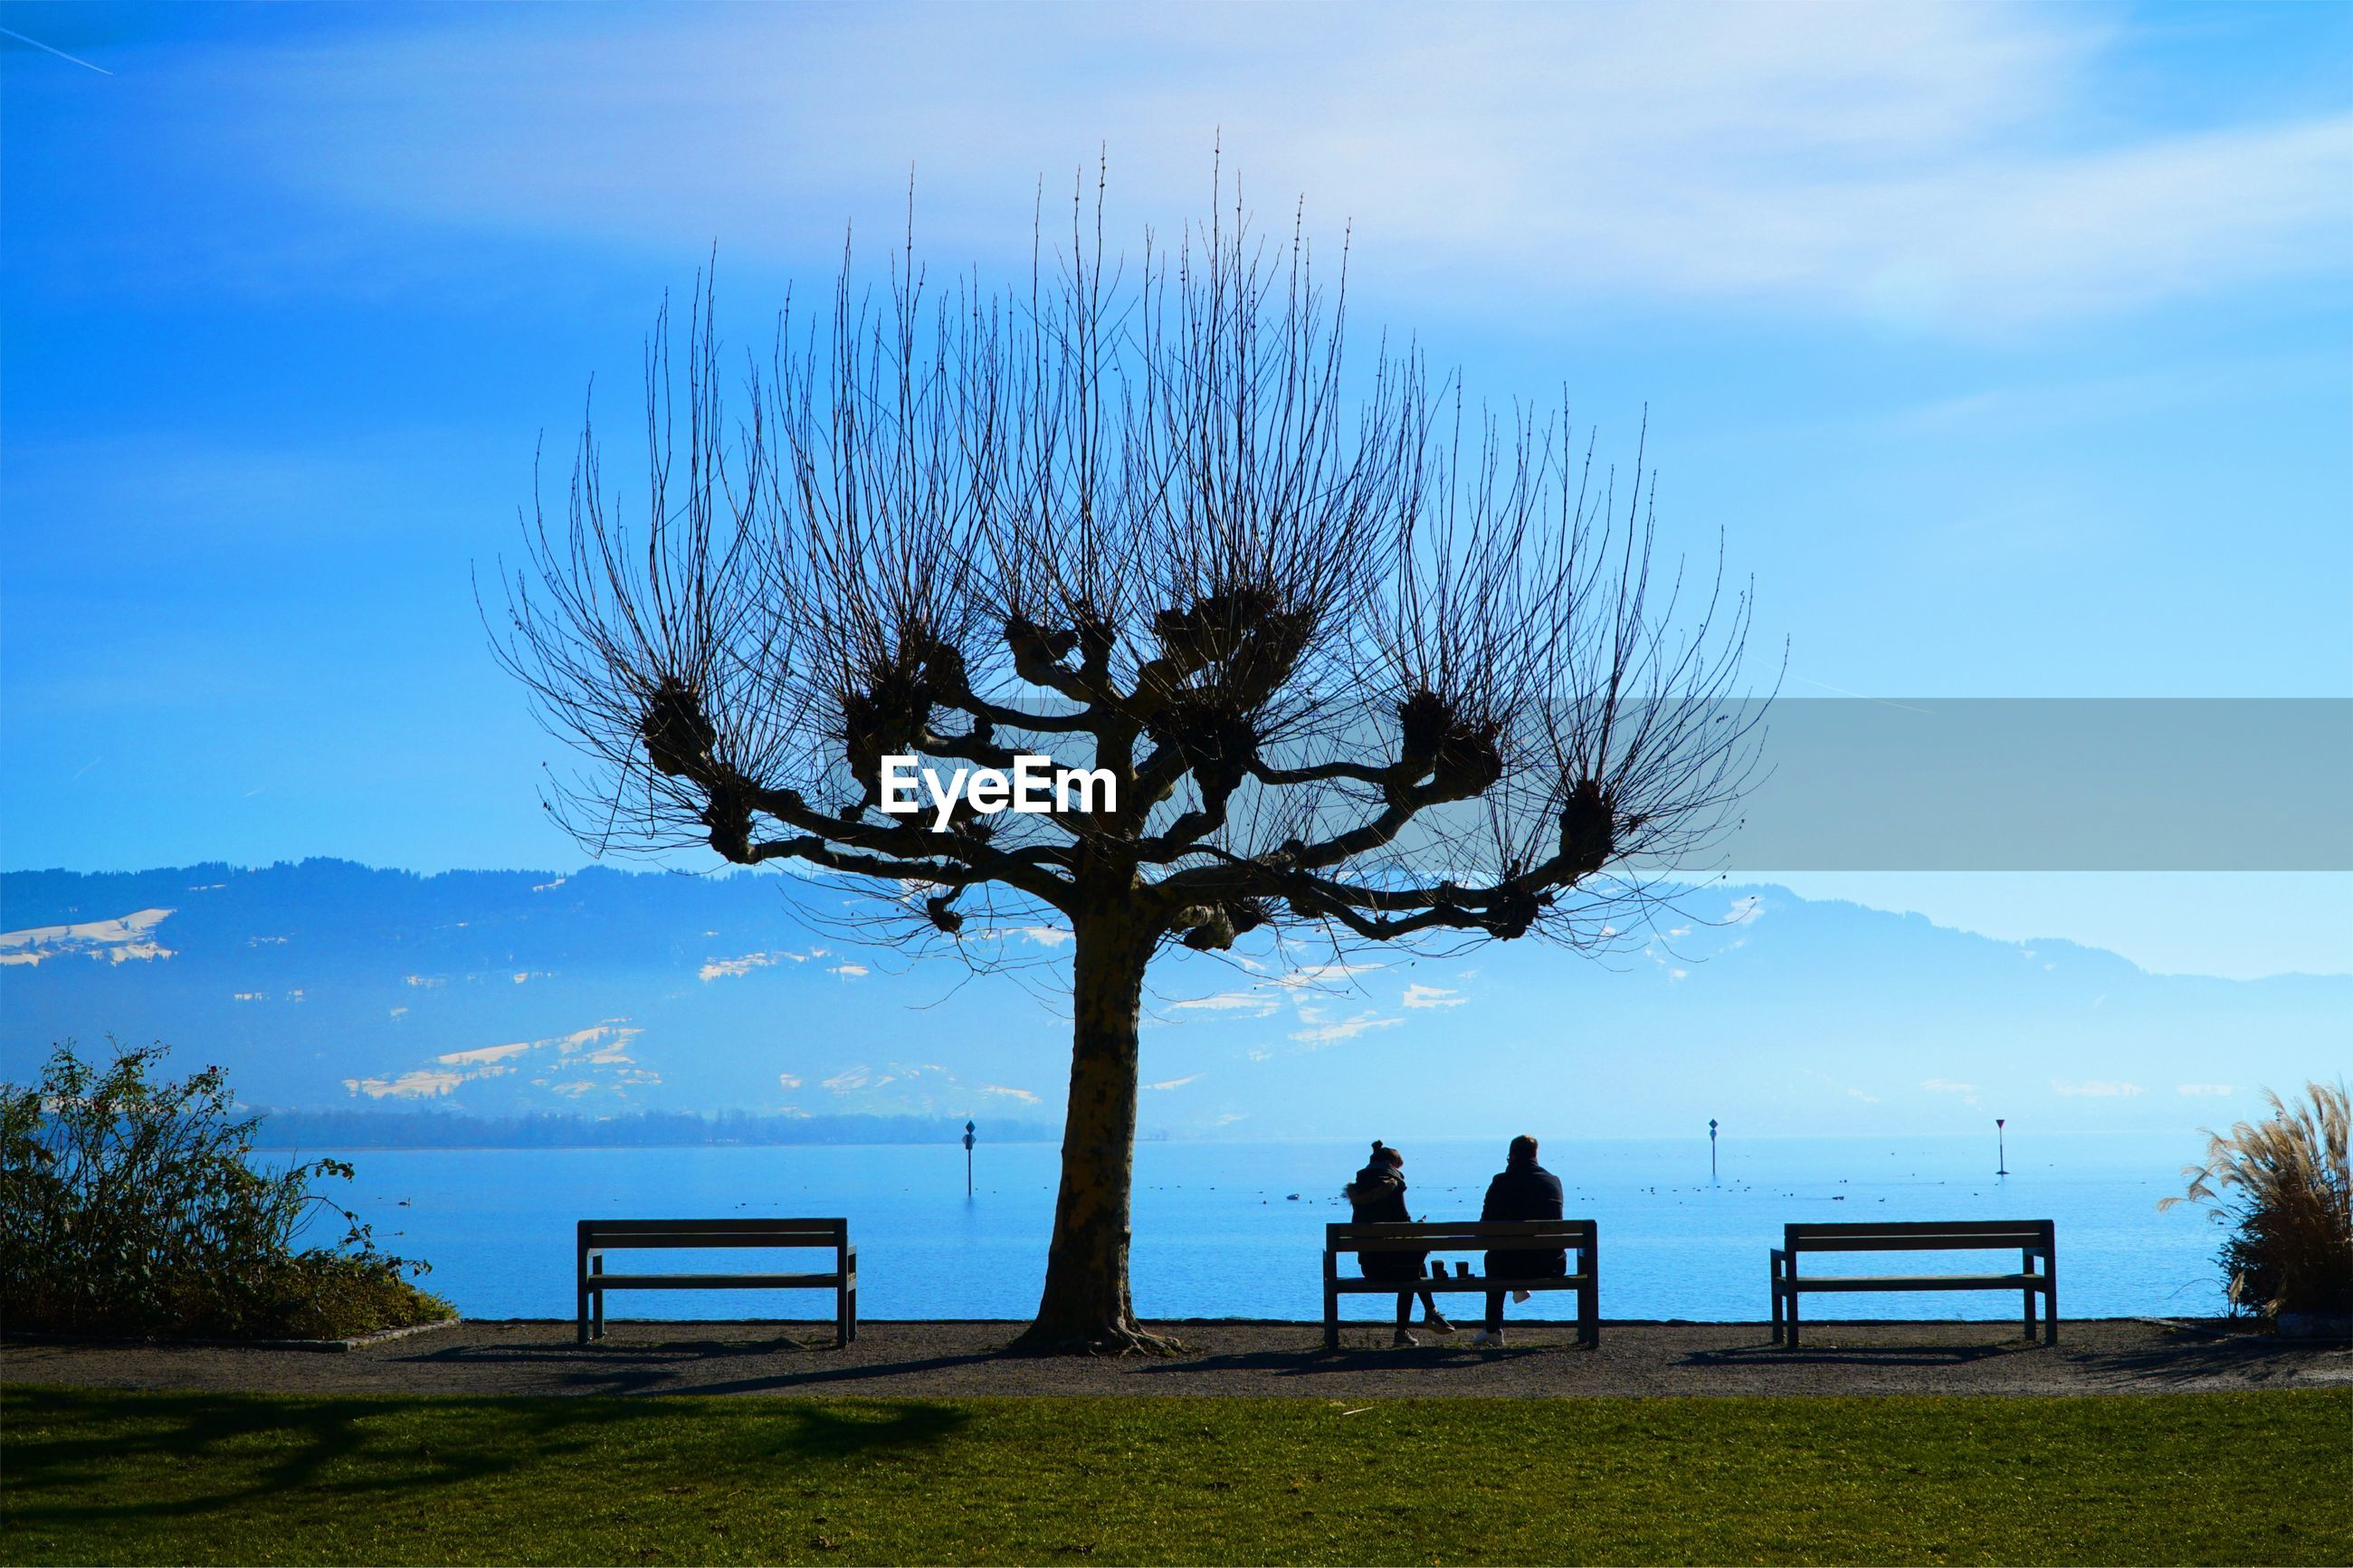 SILHOUETTE PEOPLE SITTING ON BENCH AGAINST PLANTS